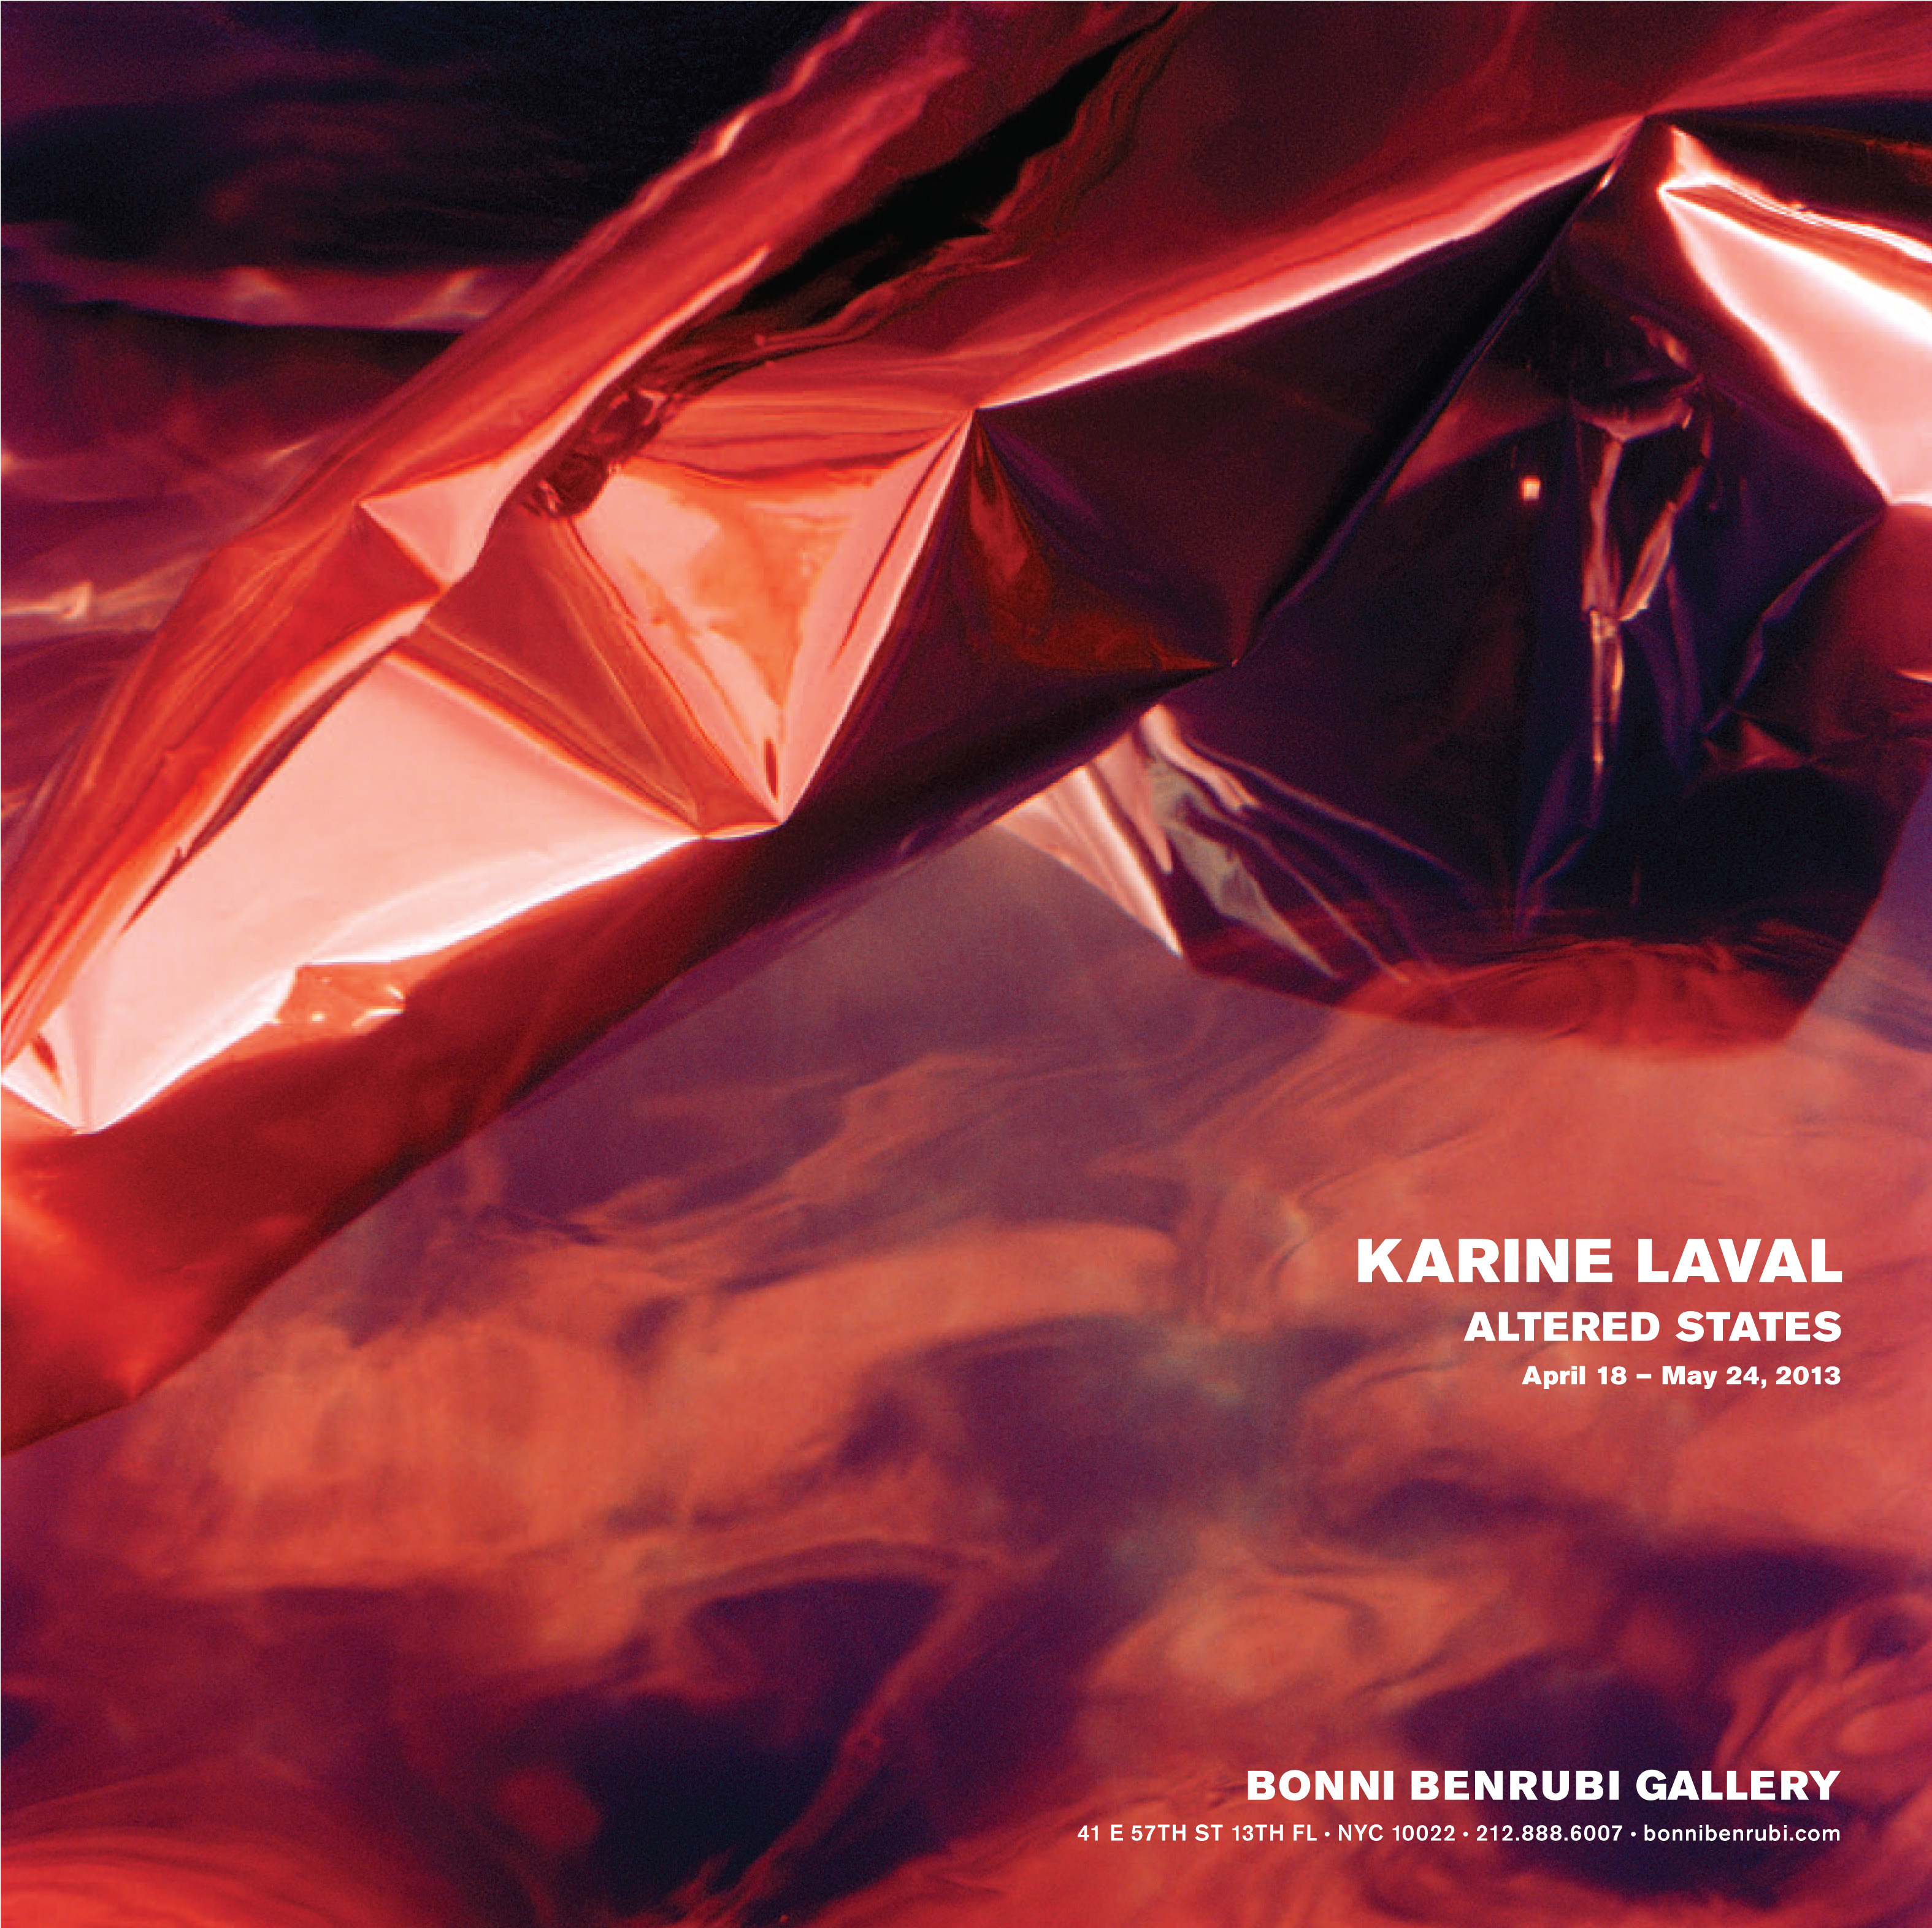 Karine laval photography news blog new projects reviews and